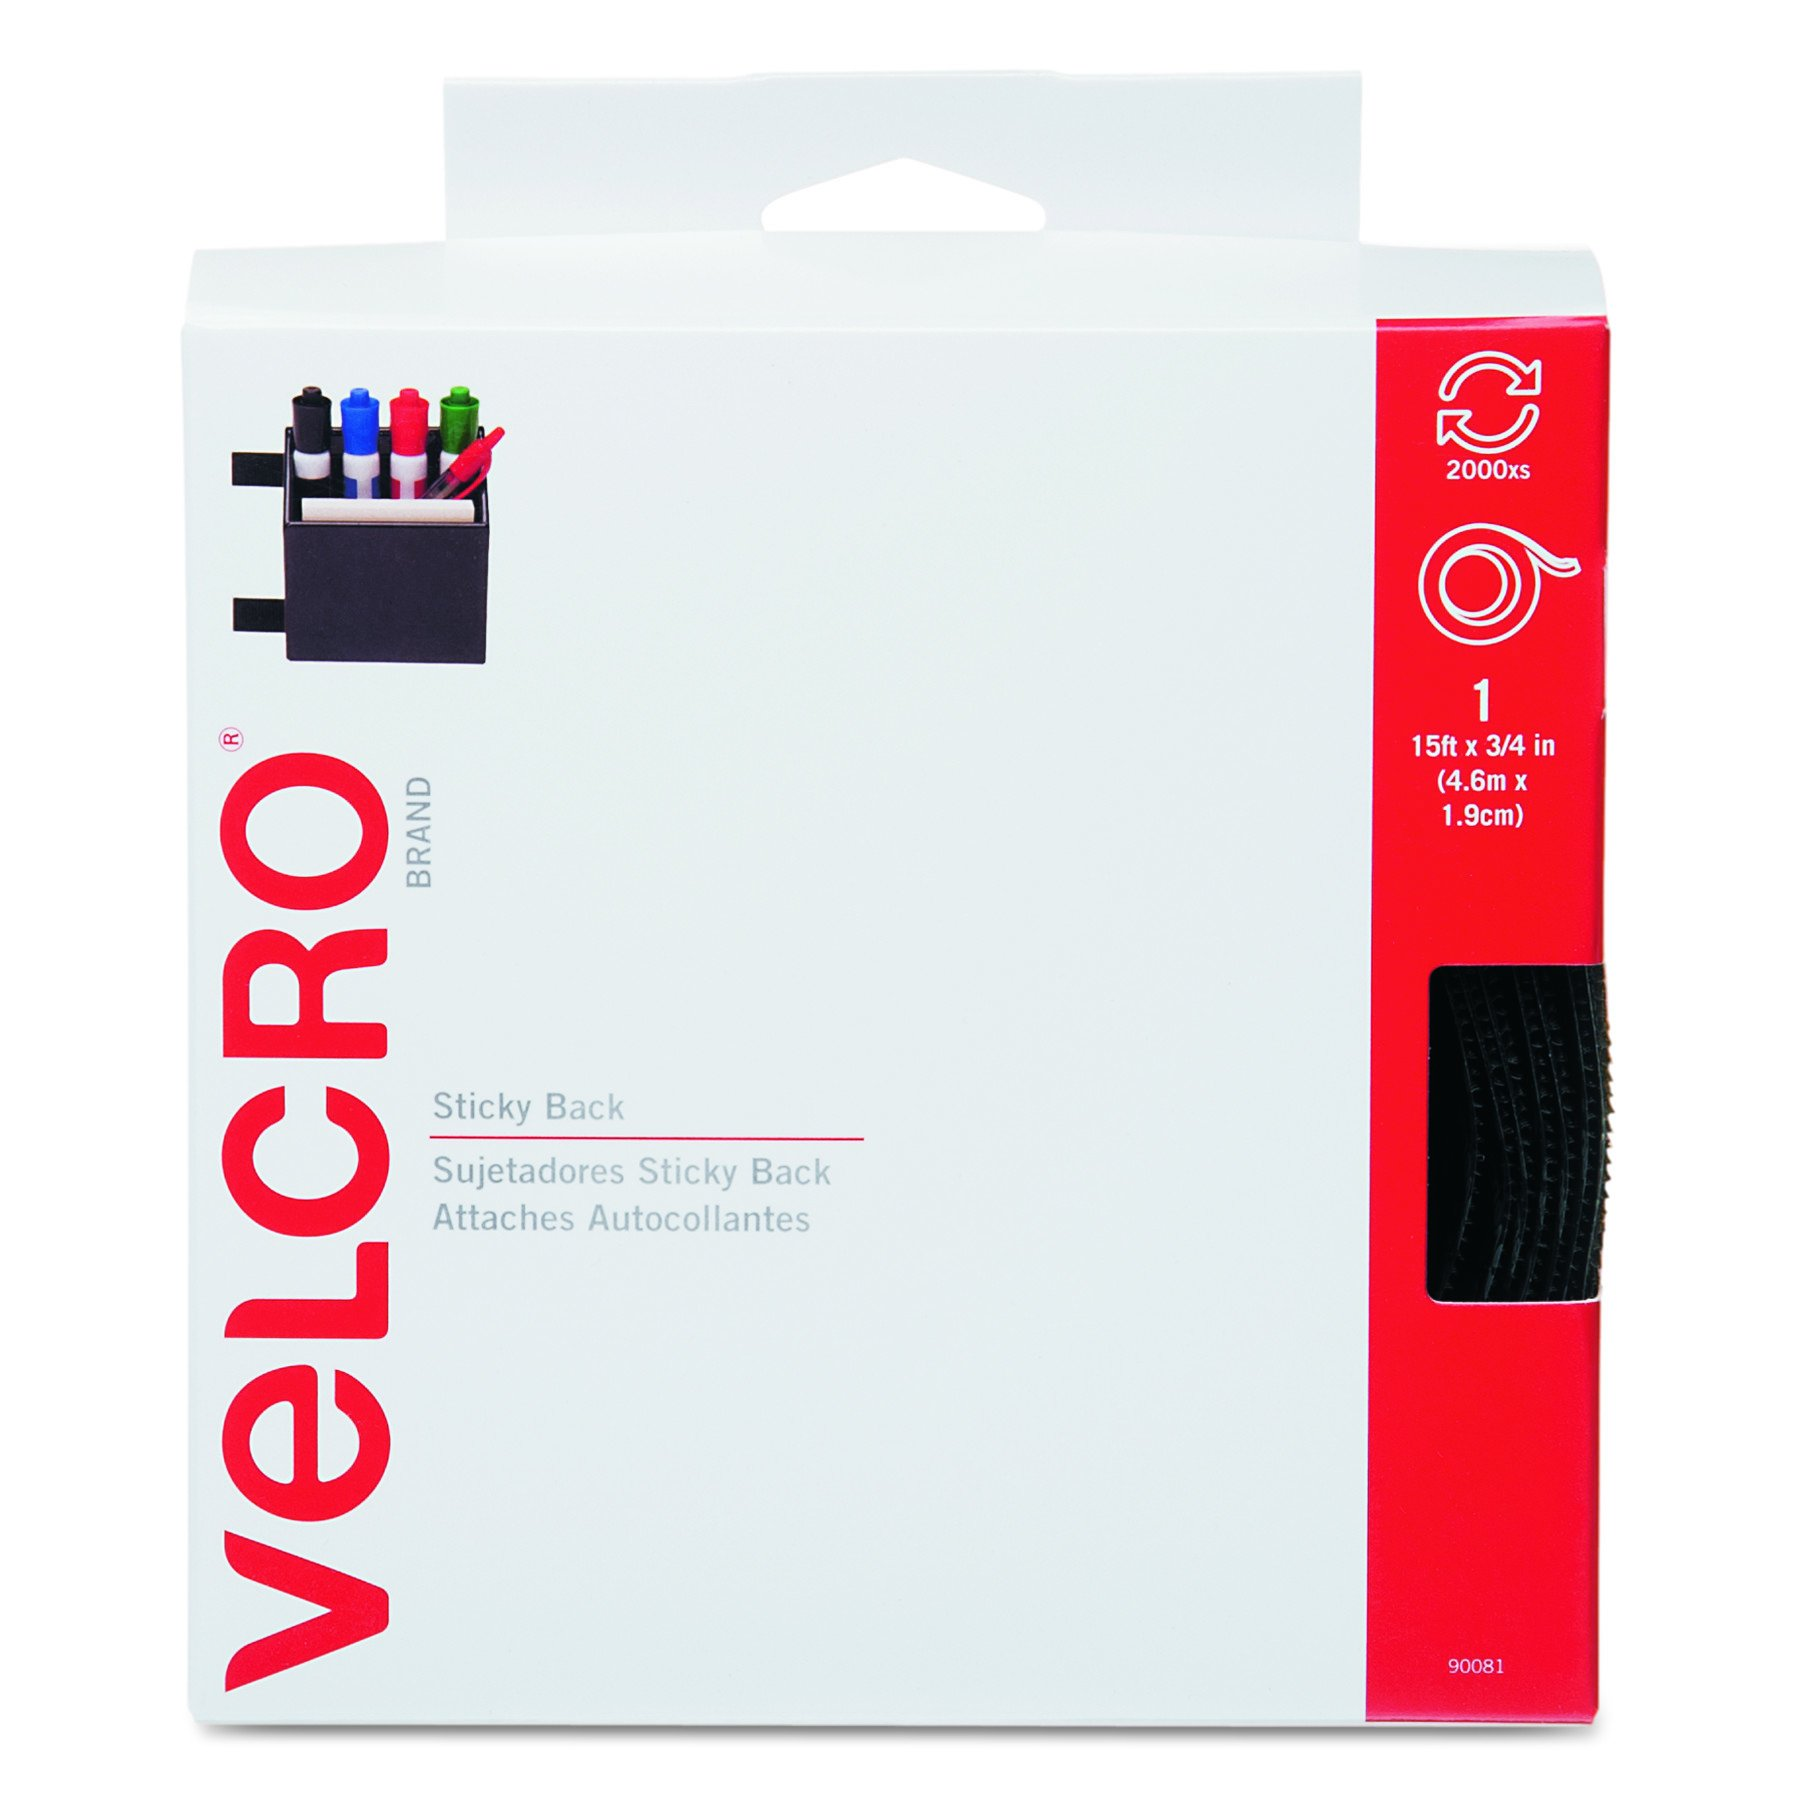 VELCRO Brand - Sticky Back Hook and Loop Fasteners| Perfect for Home or Office | 15ft x 3/4in Tape | Black